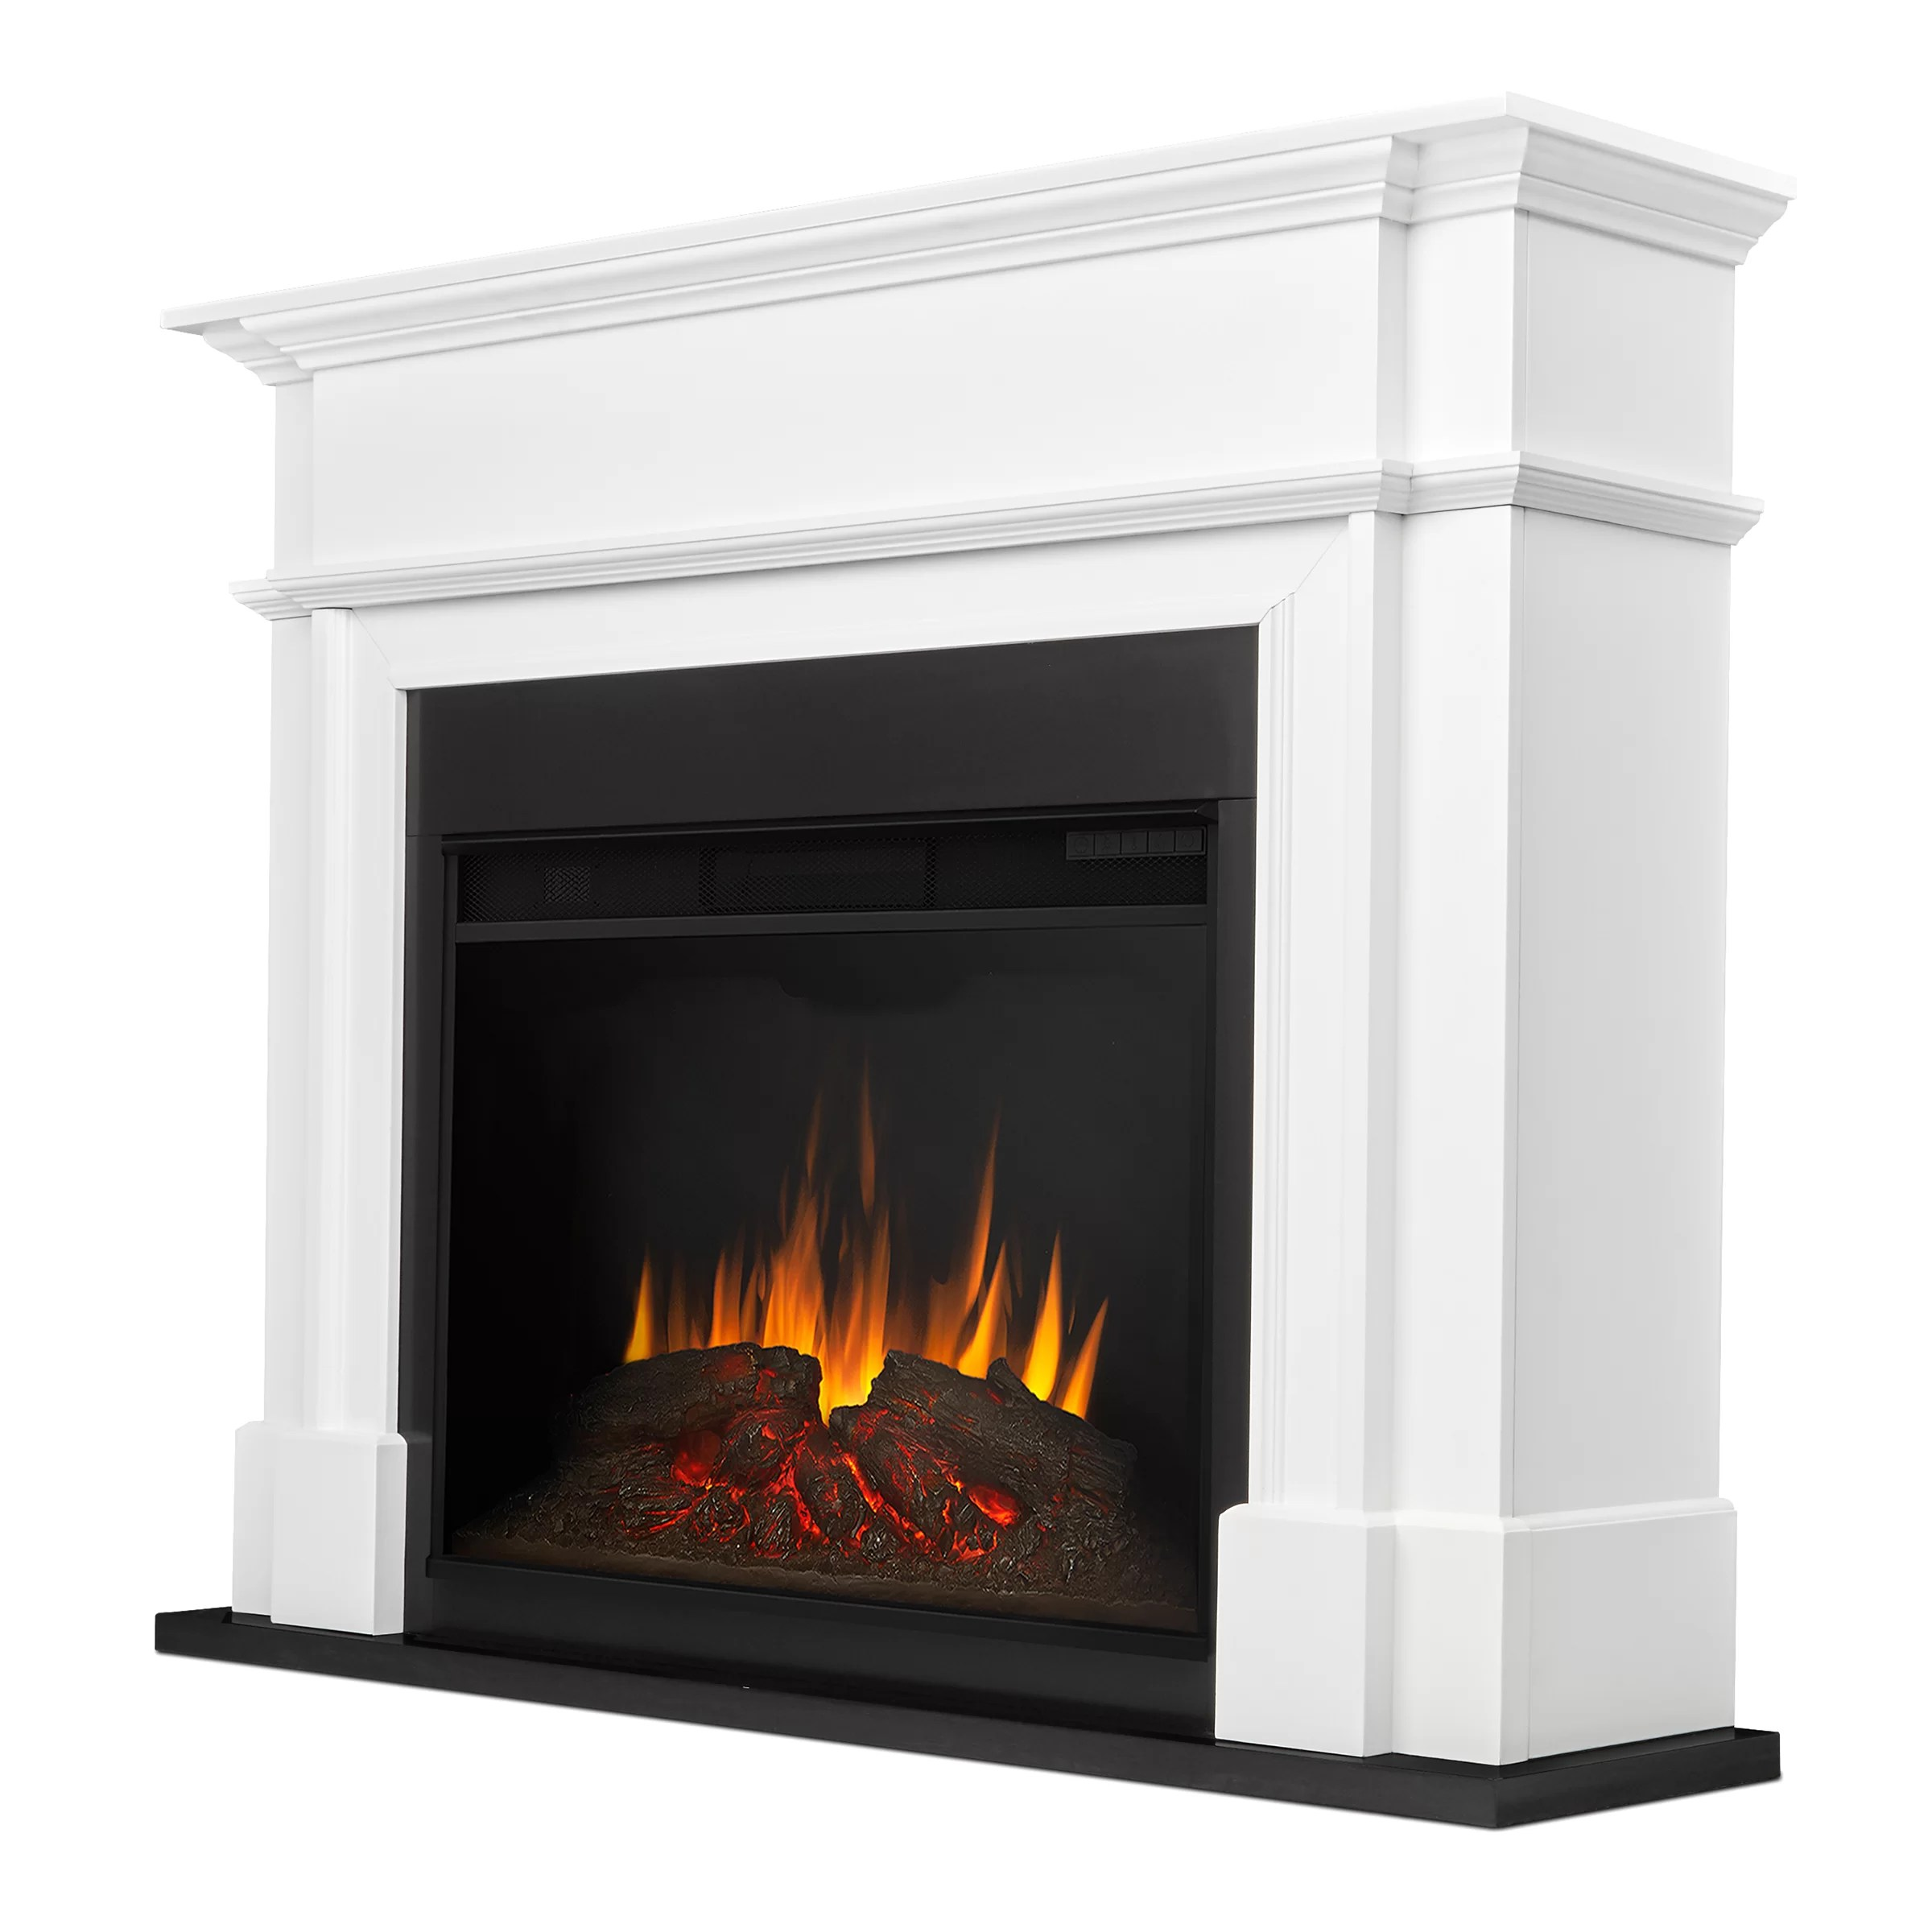 Space Heaters Fireplace Harlan Grand Electric Fireplace